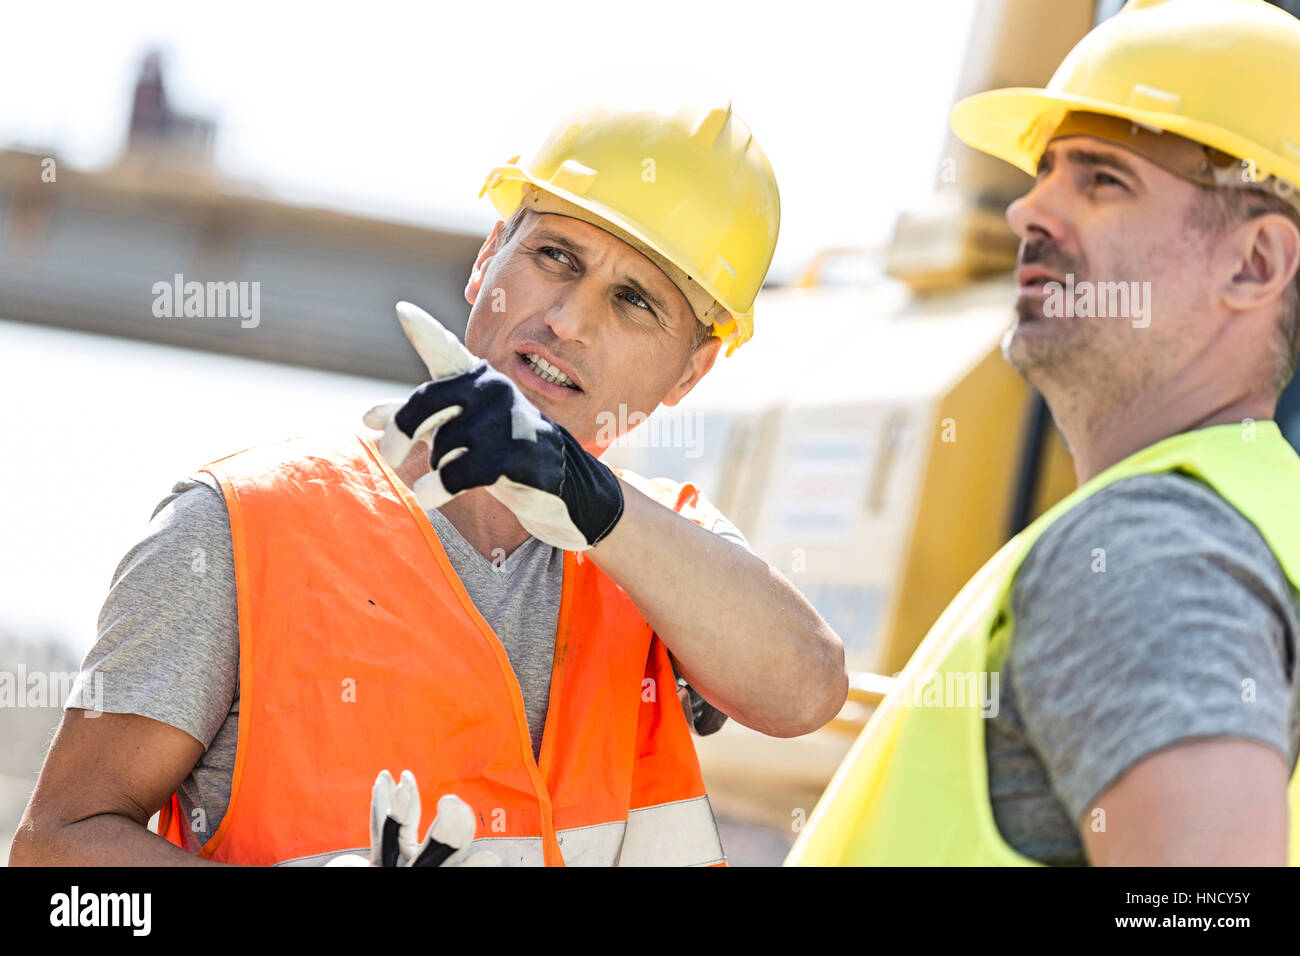 Supervisor showing something to colleague at construction site on sunny day - Stock Image